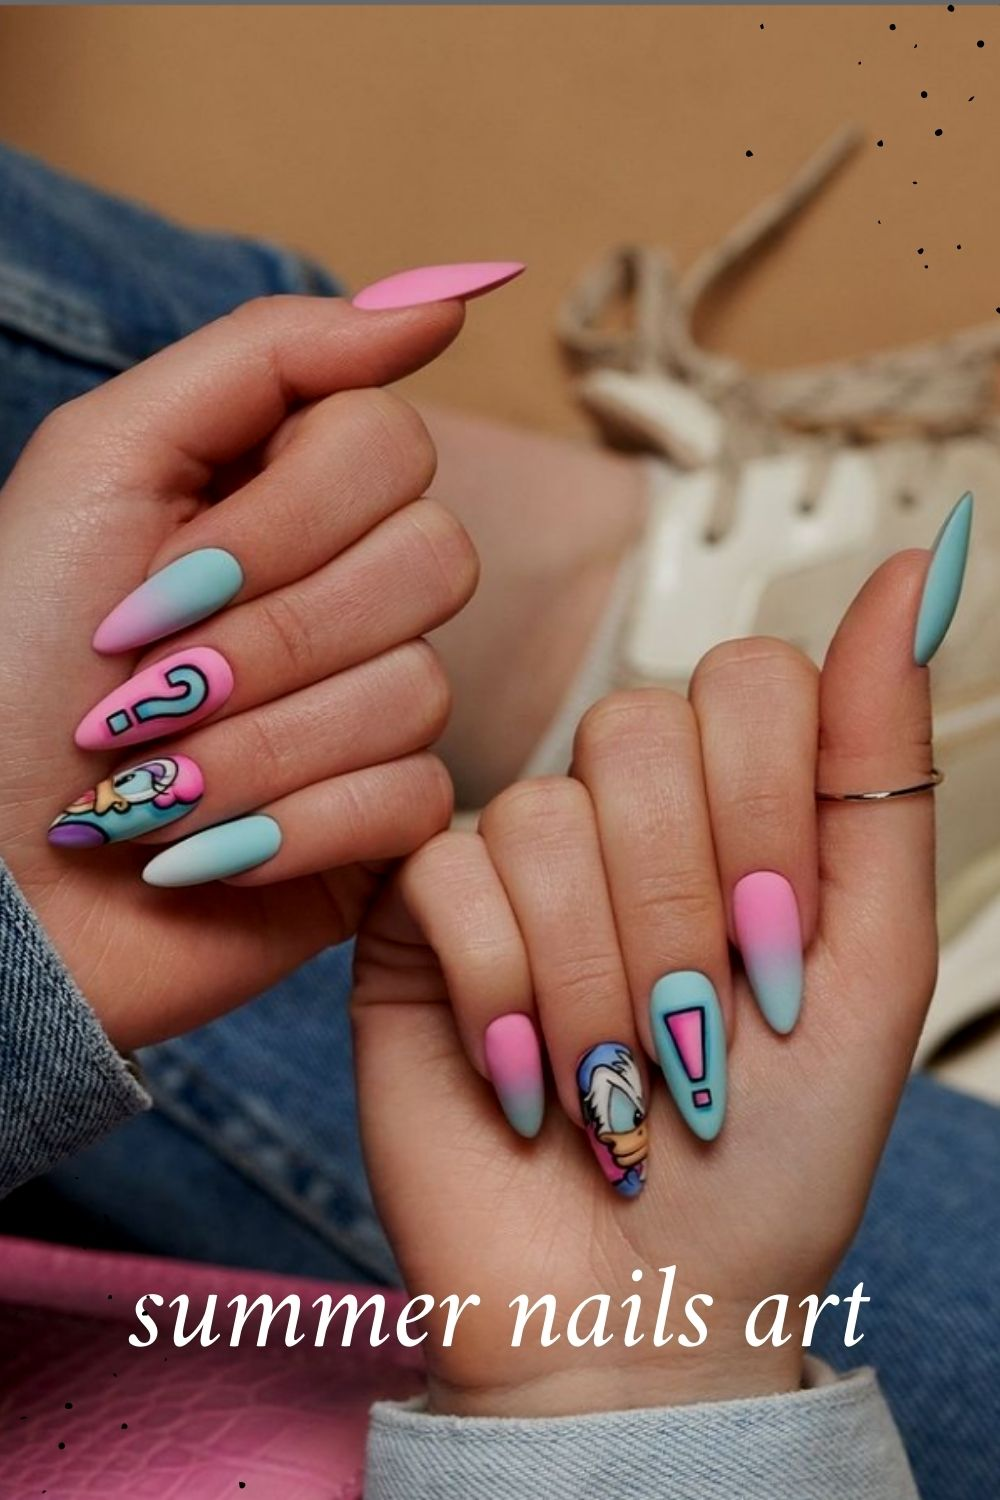 35 Trendy Summer Nails Art Ideas You Should Try in 2021